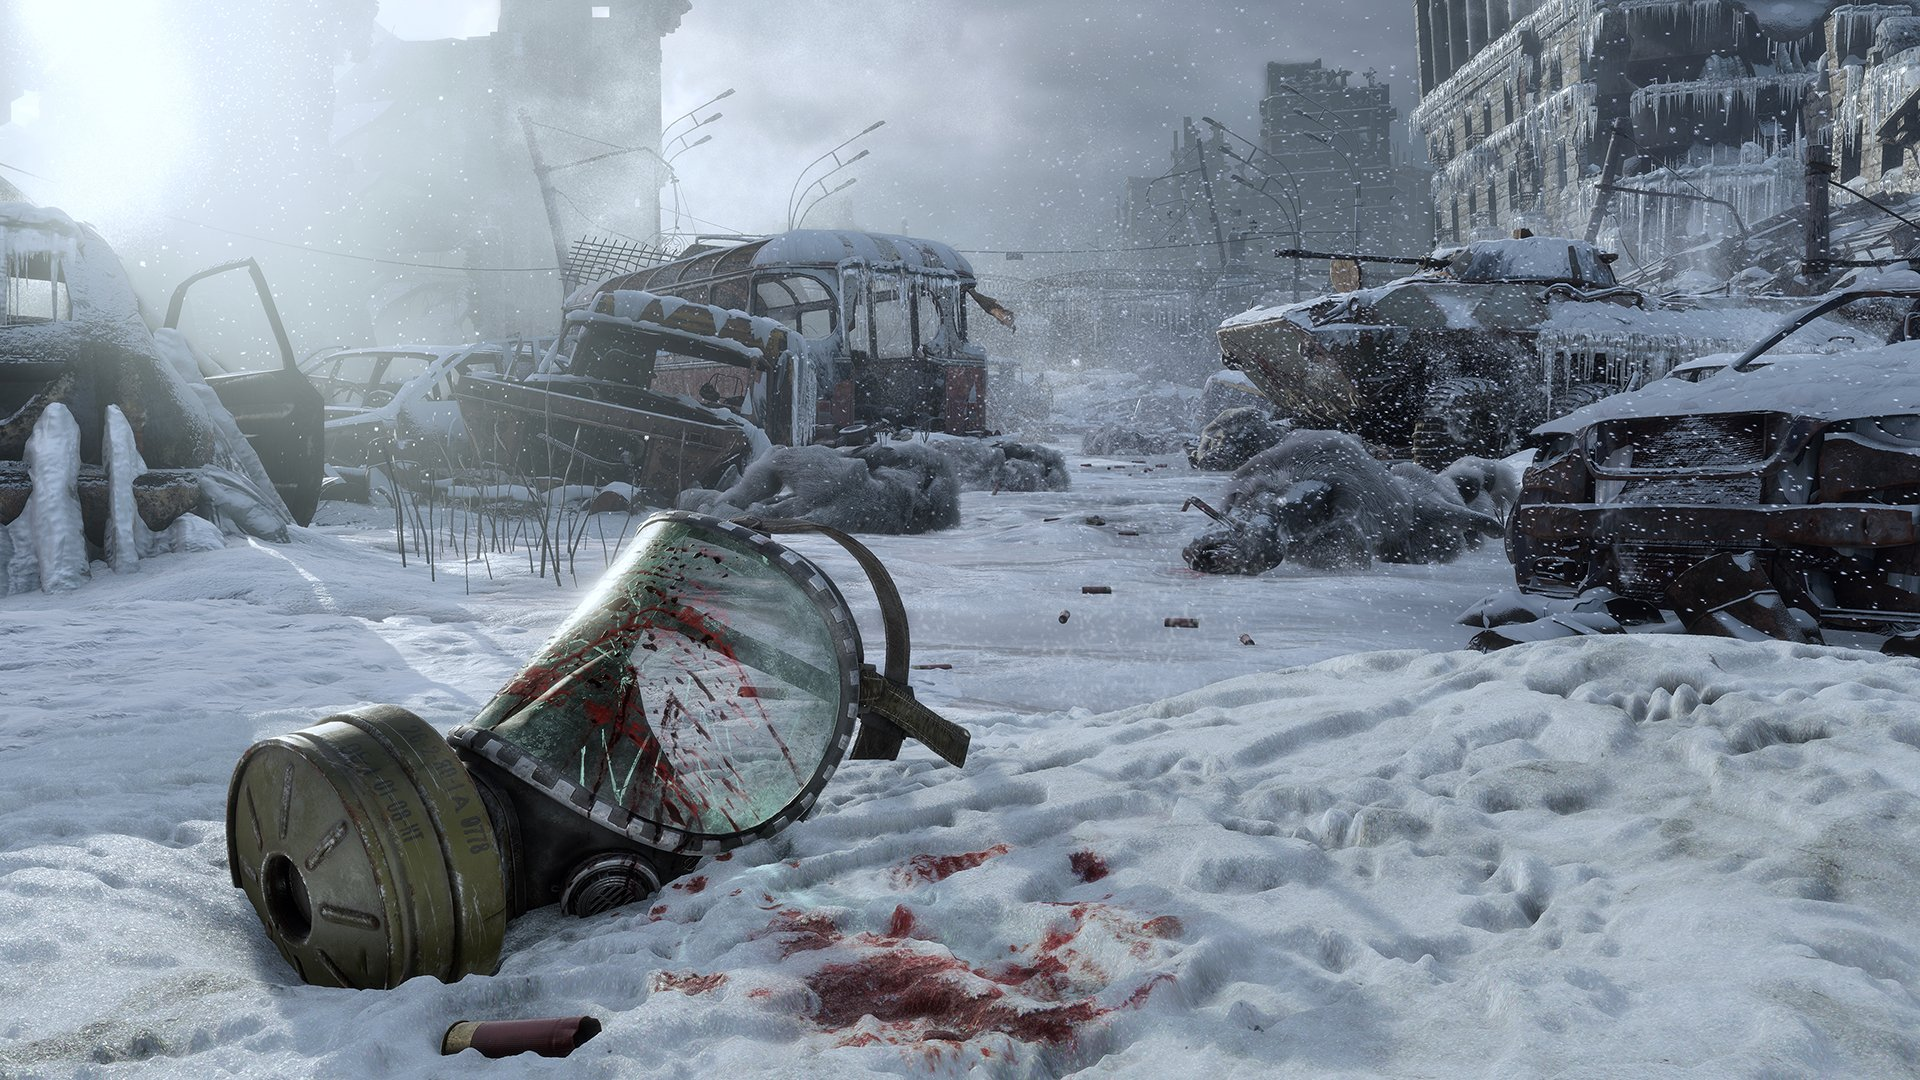 In Metro Exodus, the Morality system will judge your actions on a scale from good to bad.